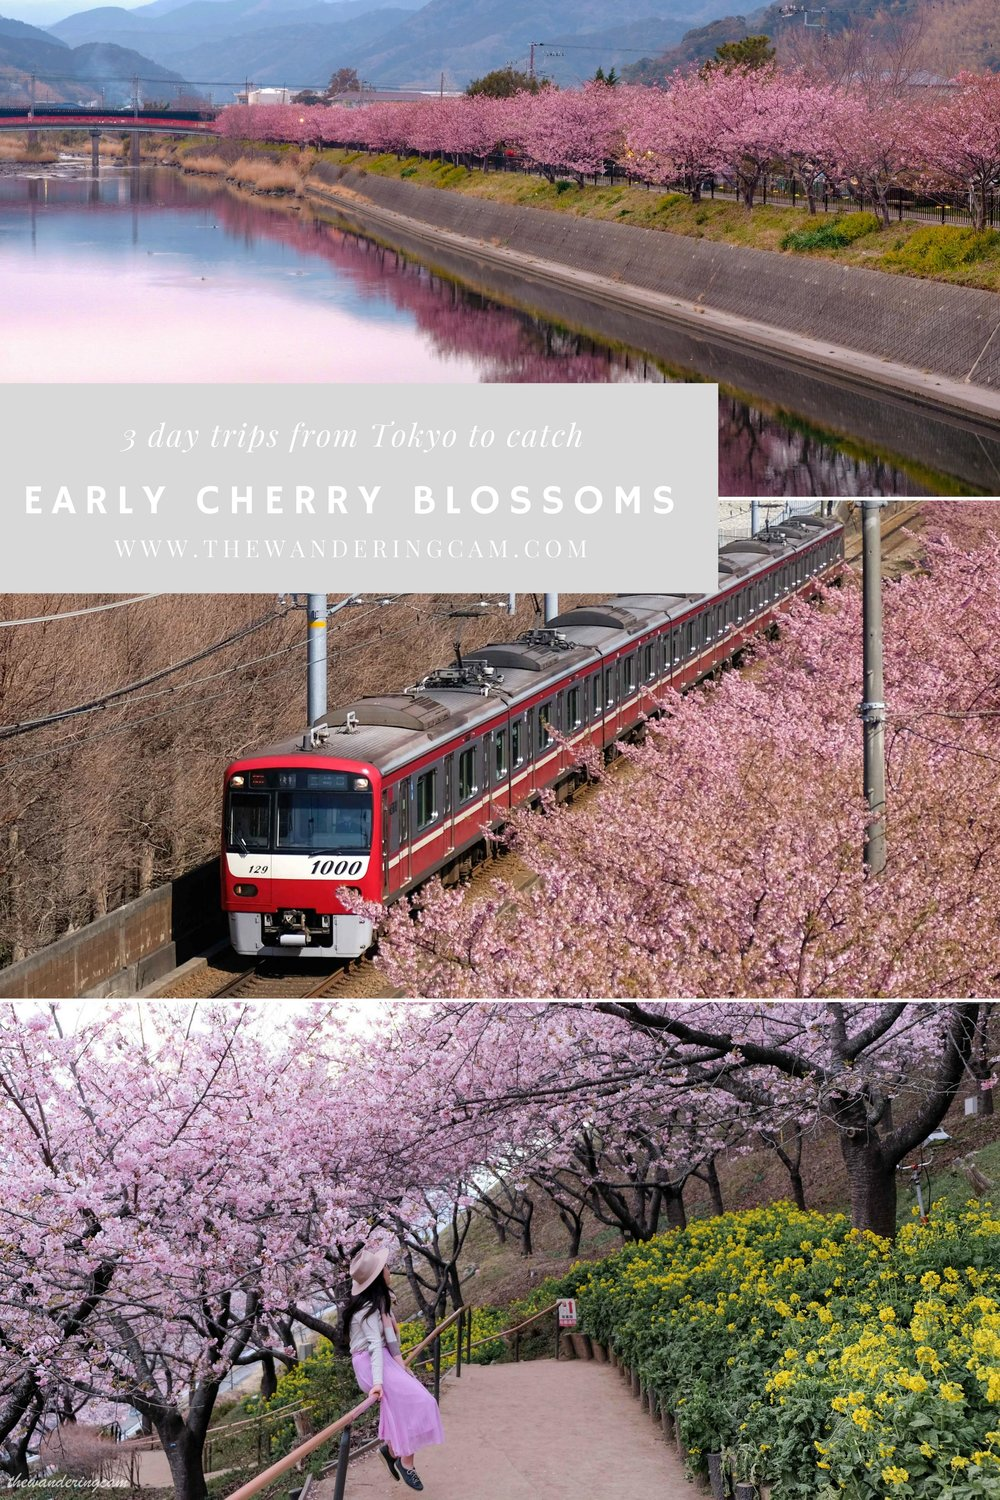 thewanderingcam_tokyoearlyblossoms-2.jpg